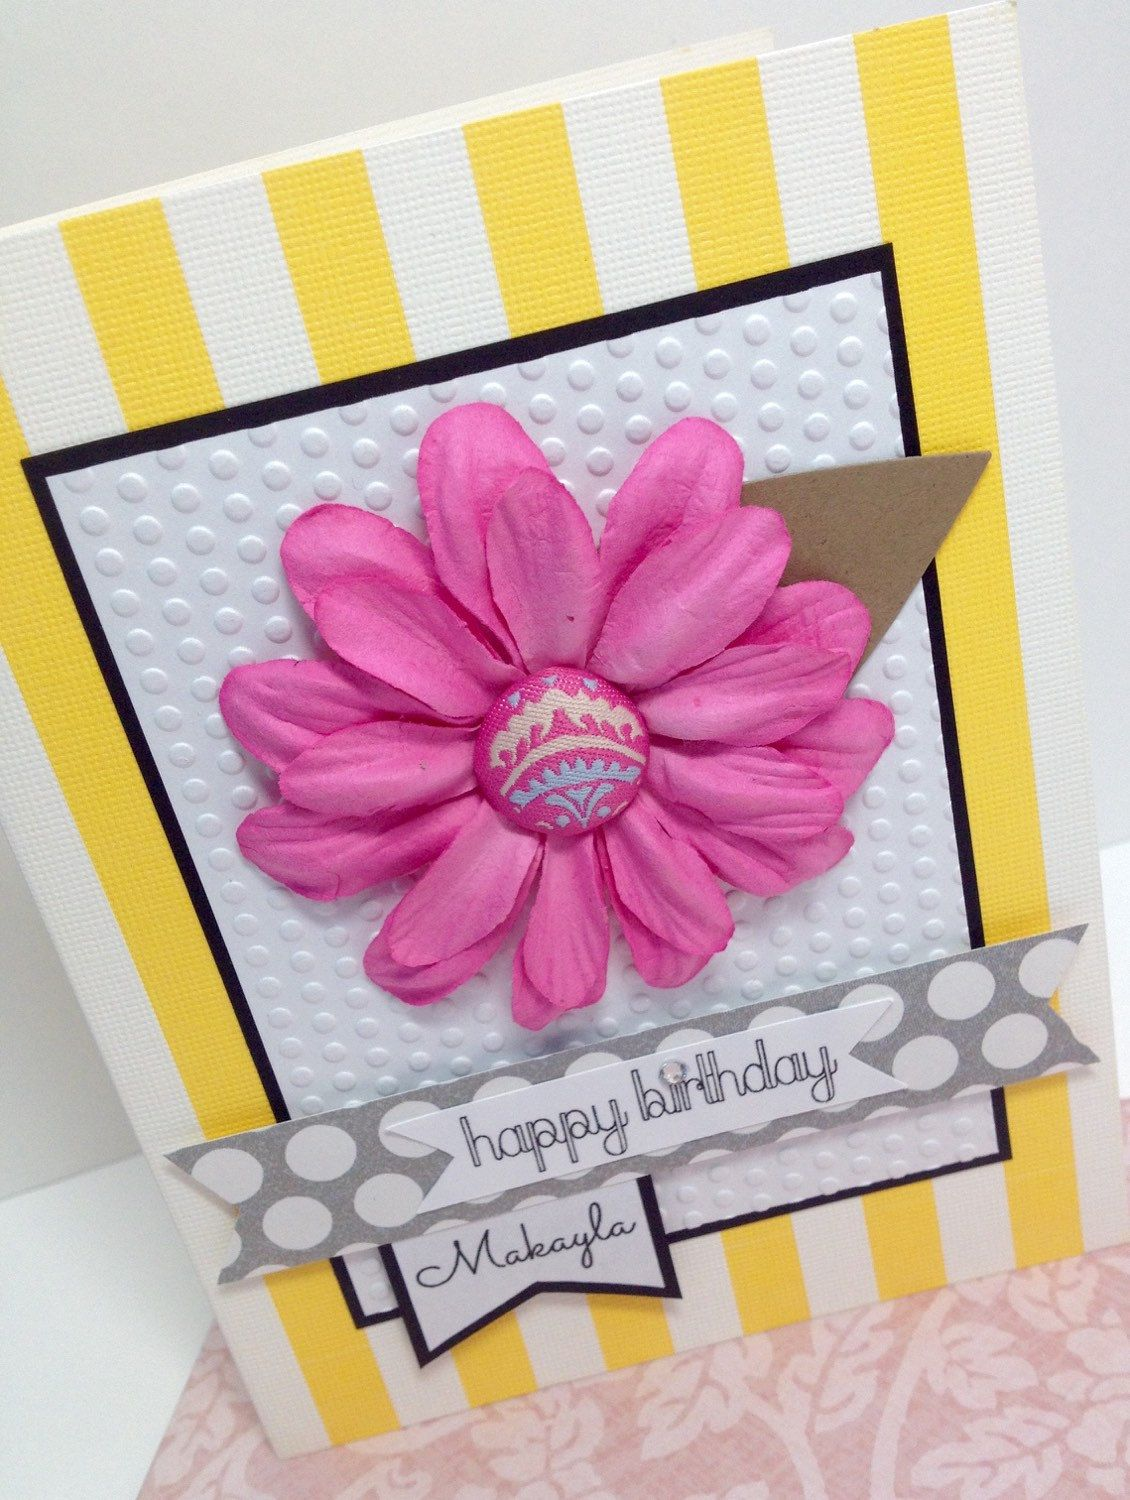 Personalized birthday card with pink flower handmade scrapbook personalized birthday card with pink flower handmade scrapbook paper greeting card pretty feminine card kristyandbryce Choice Image